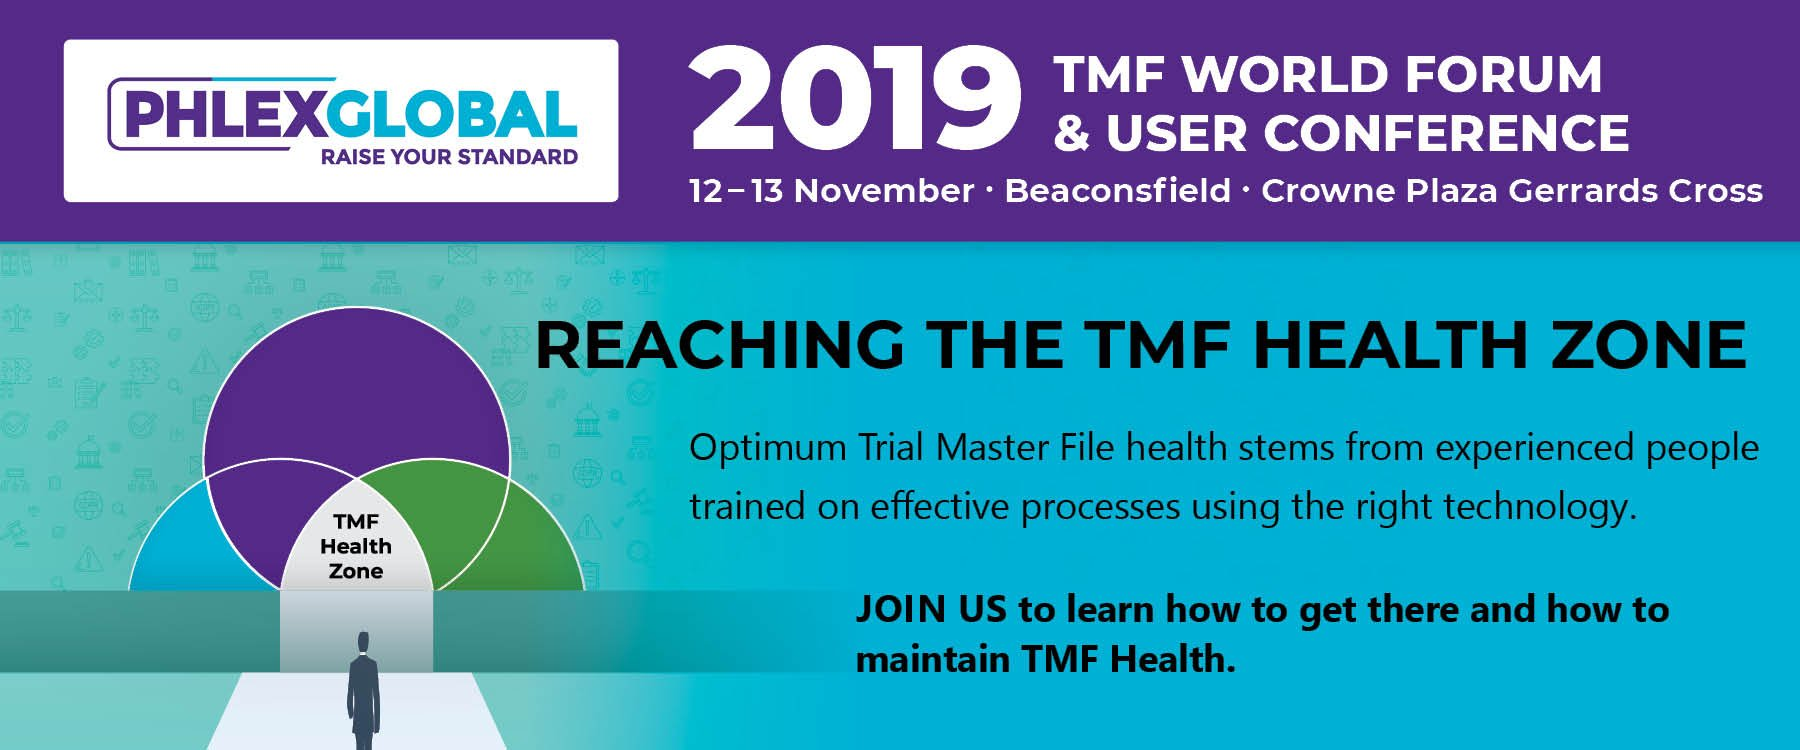 2019 TMF World Forum UK Web Header